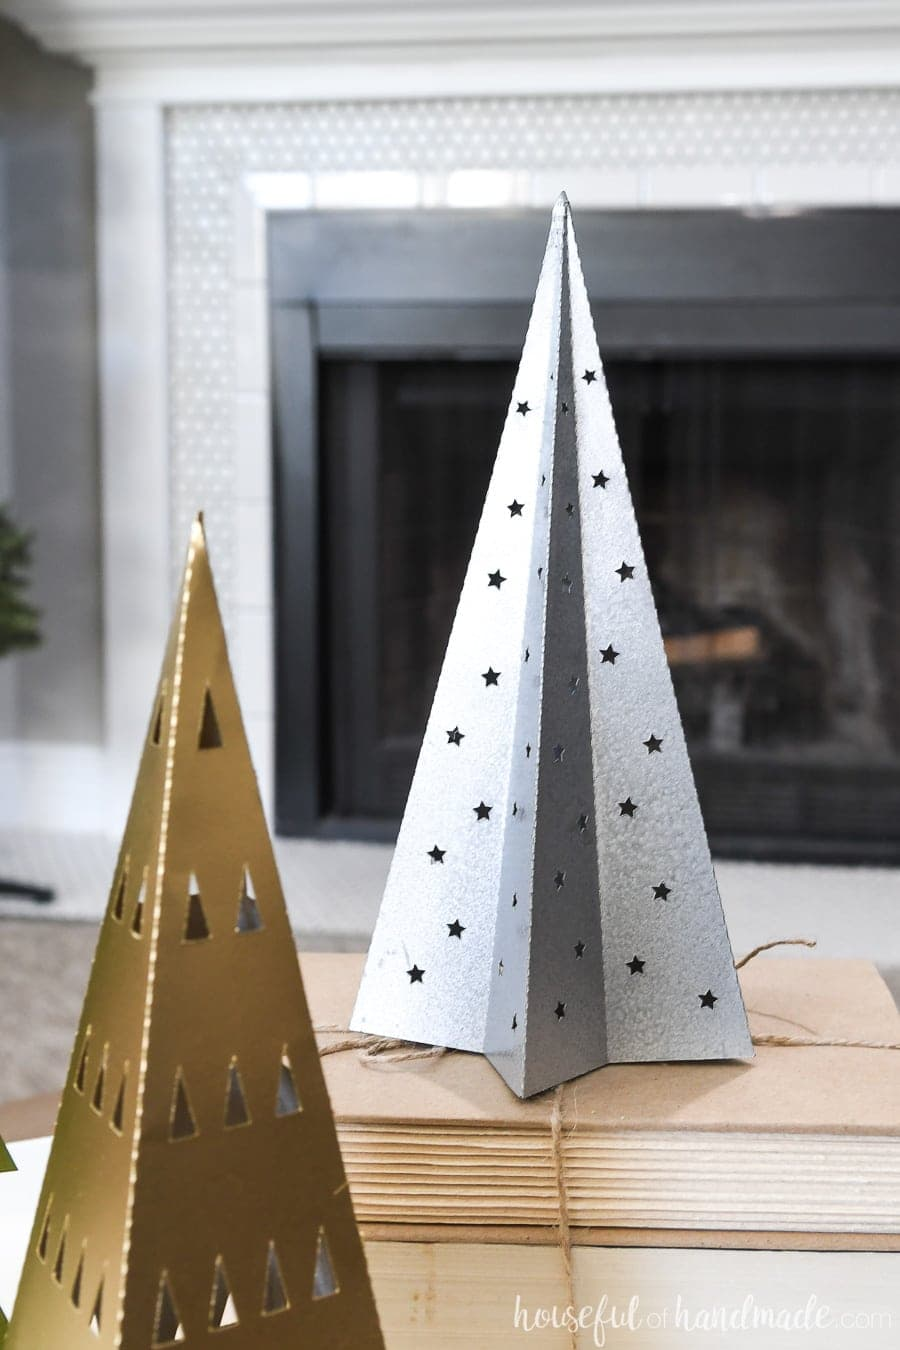 Close up of the stay shaped paper Christmas tree decor.